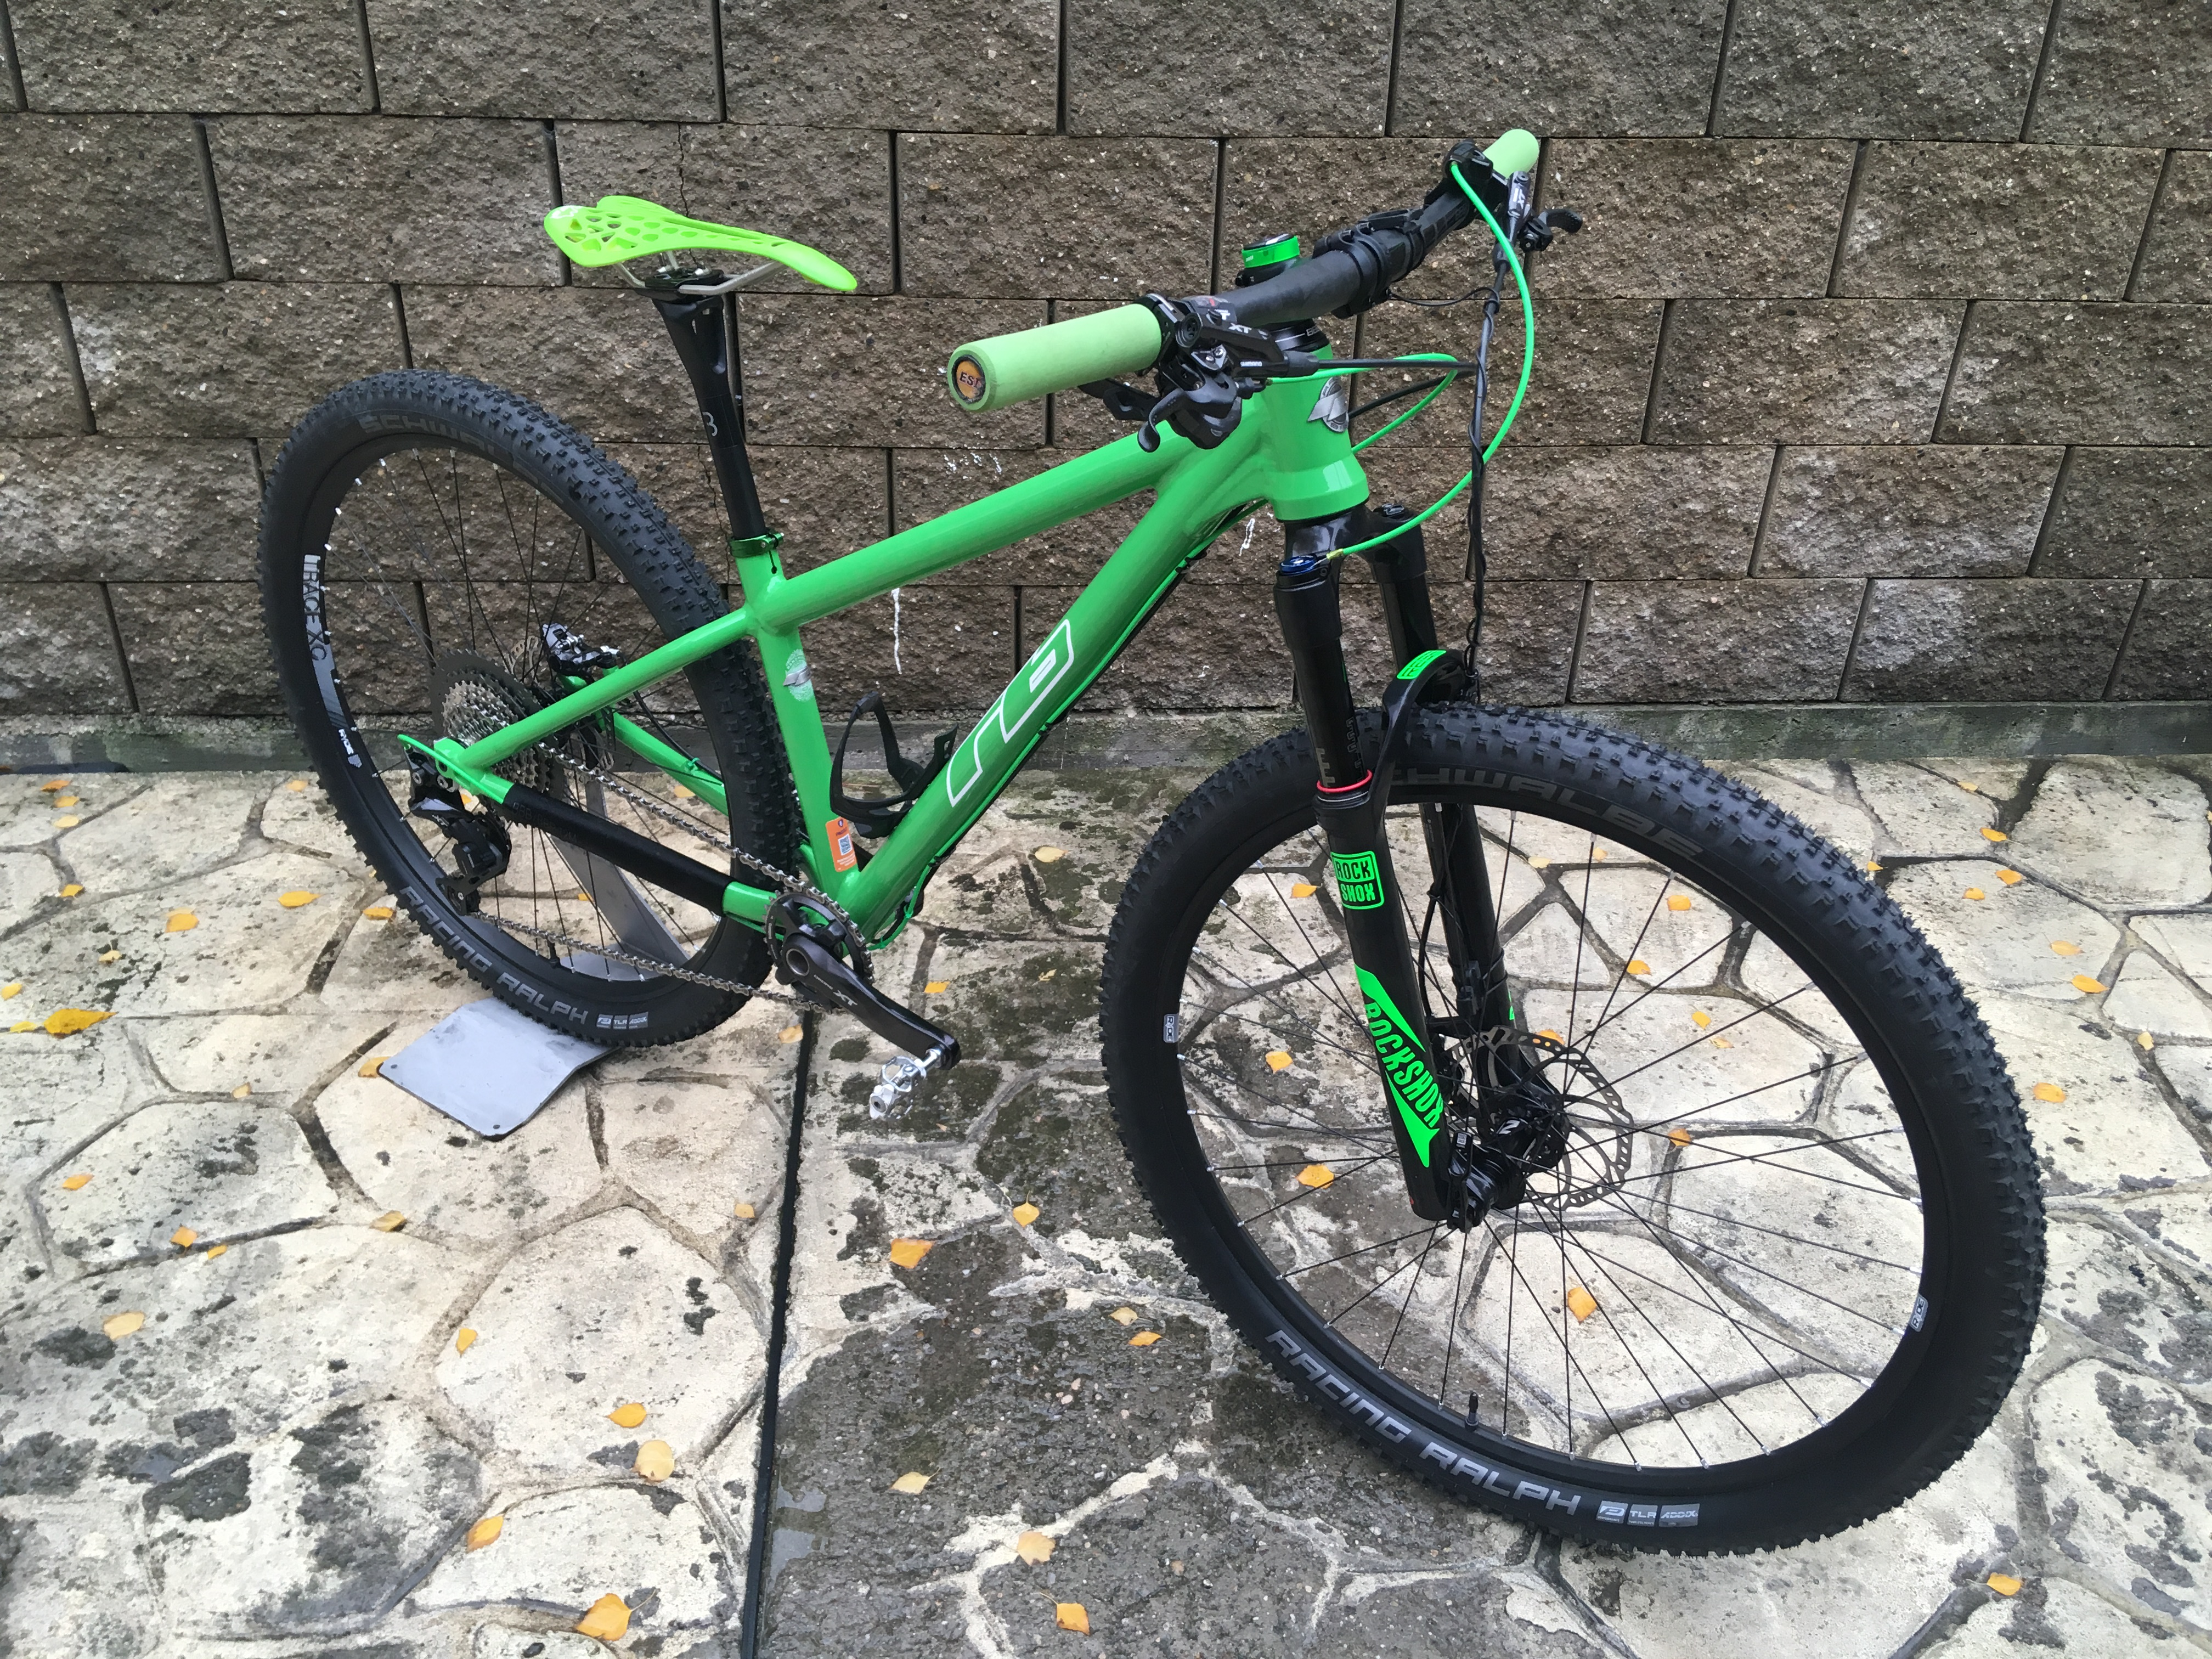 RB KID 27.5 custom